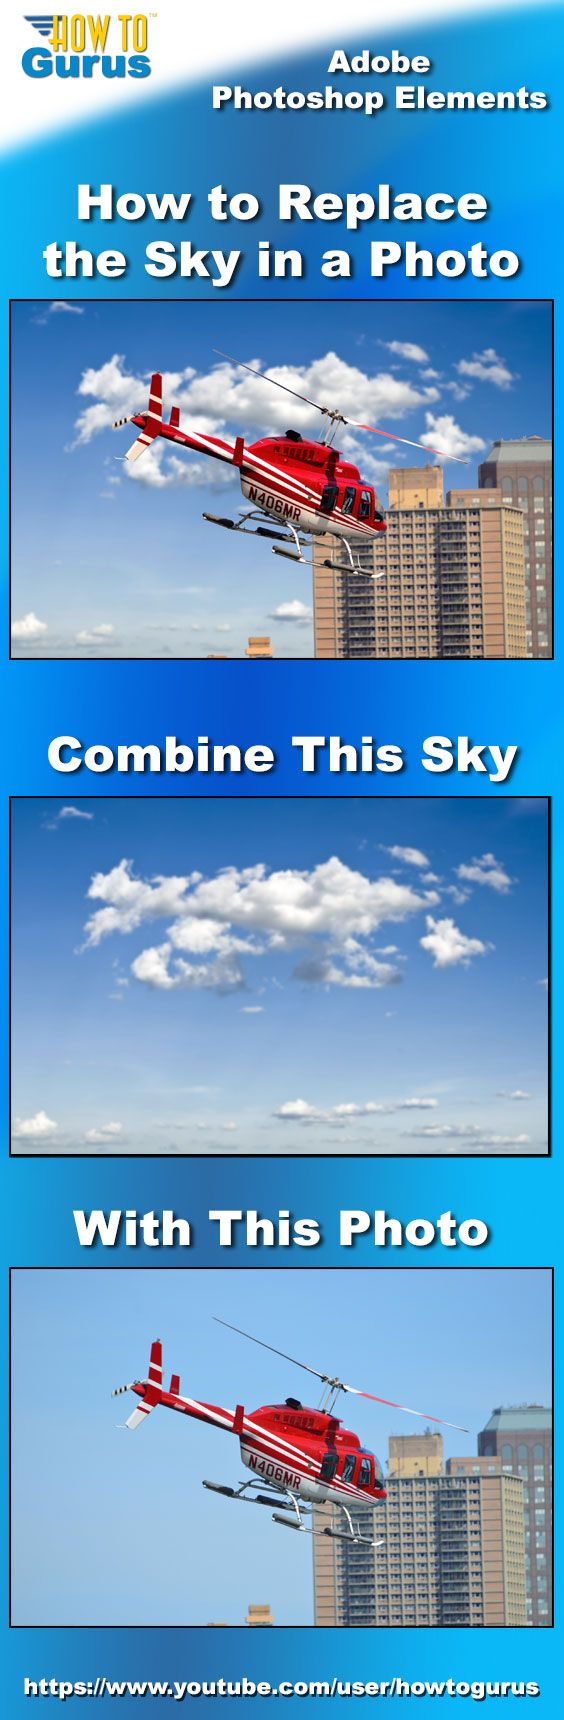 How to Replace a Sky using Photoshop Elements 15 14 13 12 11. Improve your photograph with a new sky!